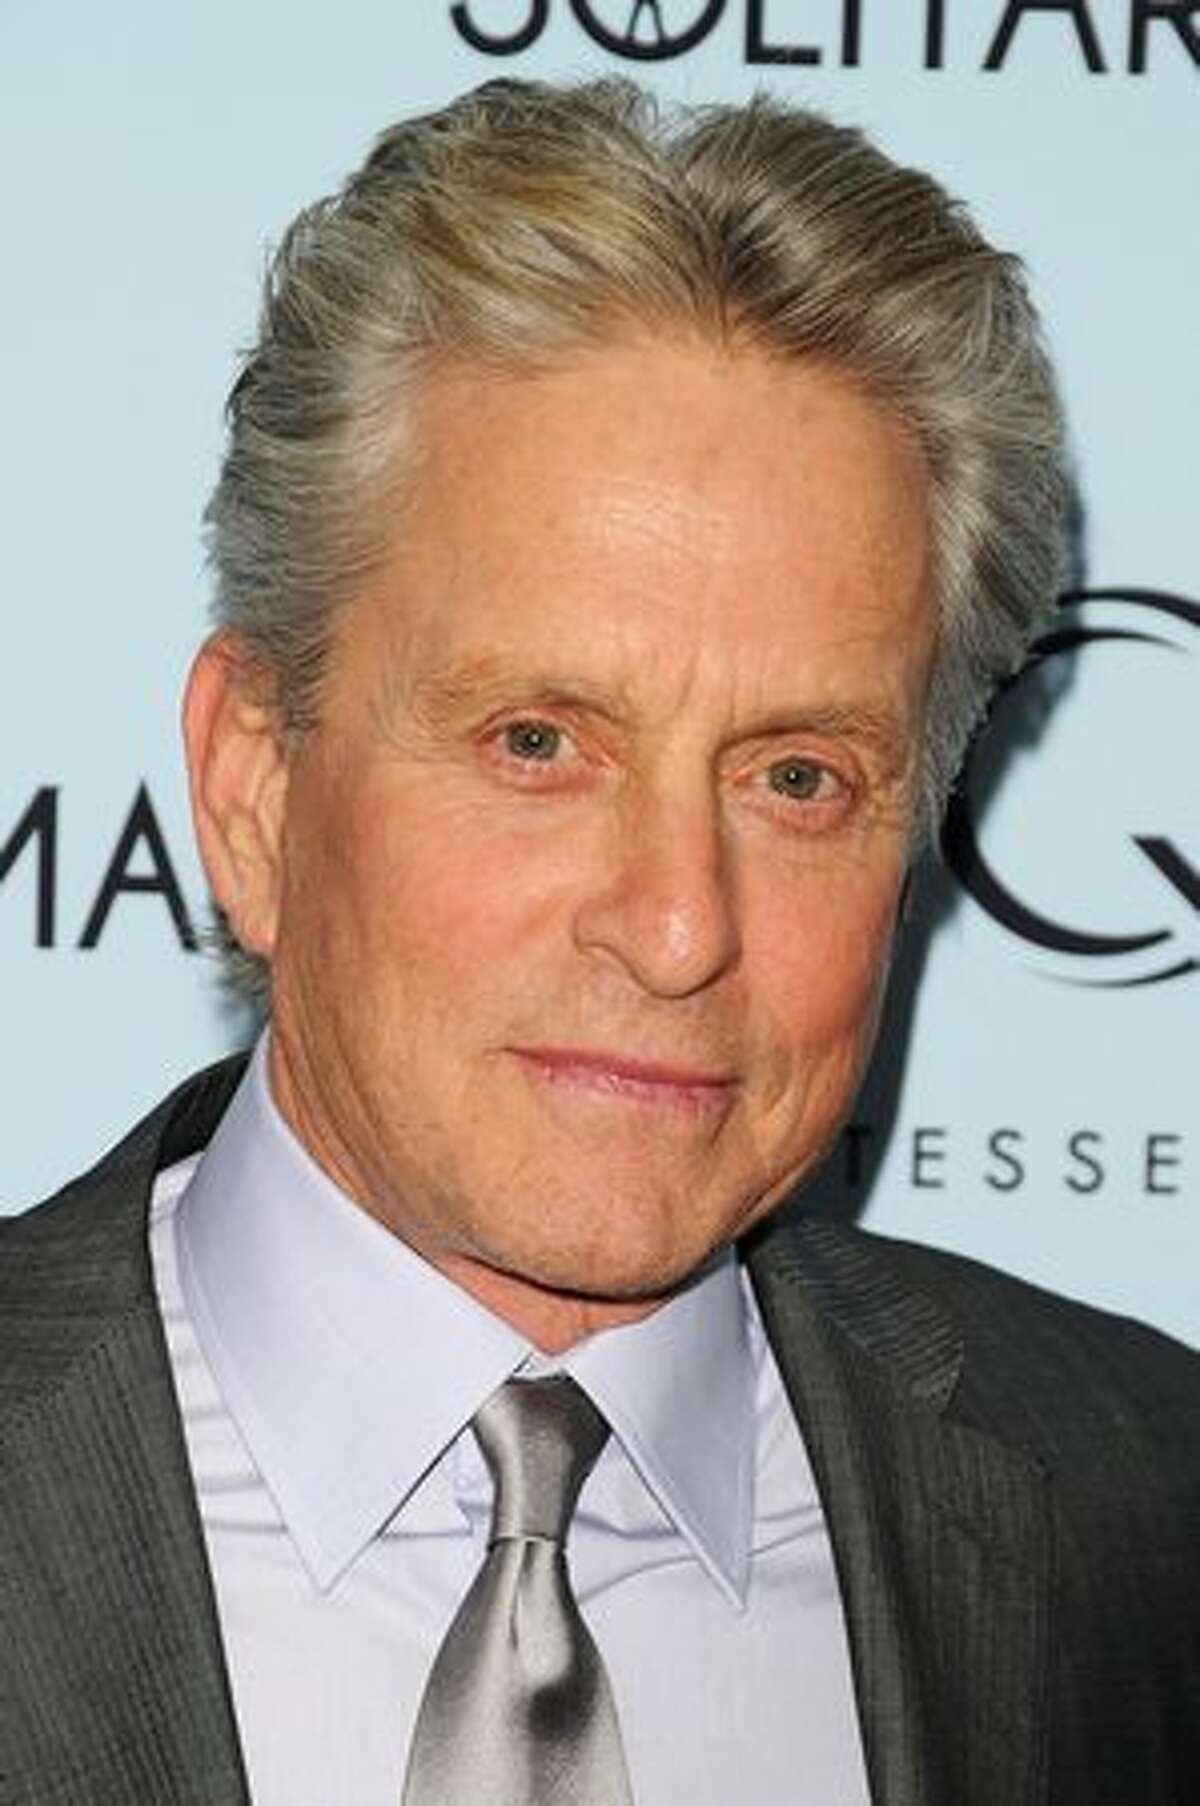 Actor Michael Douglas attends the premiere of